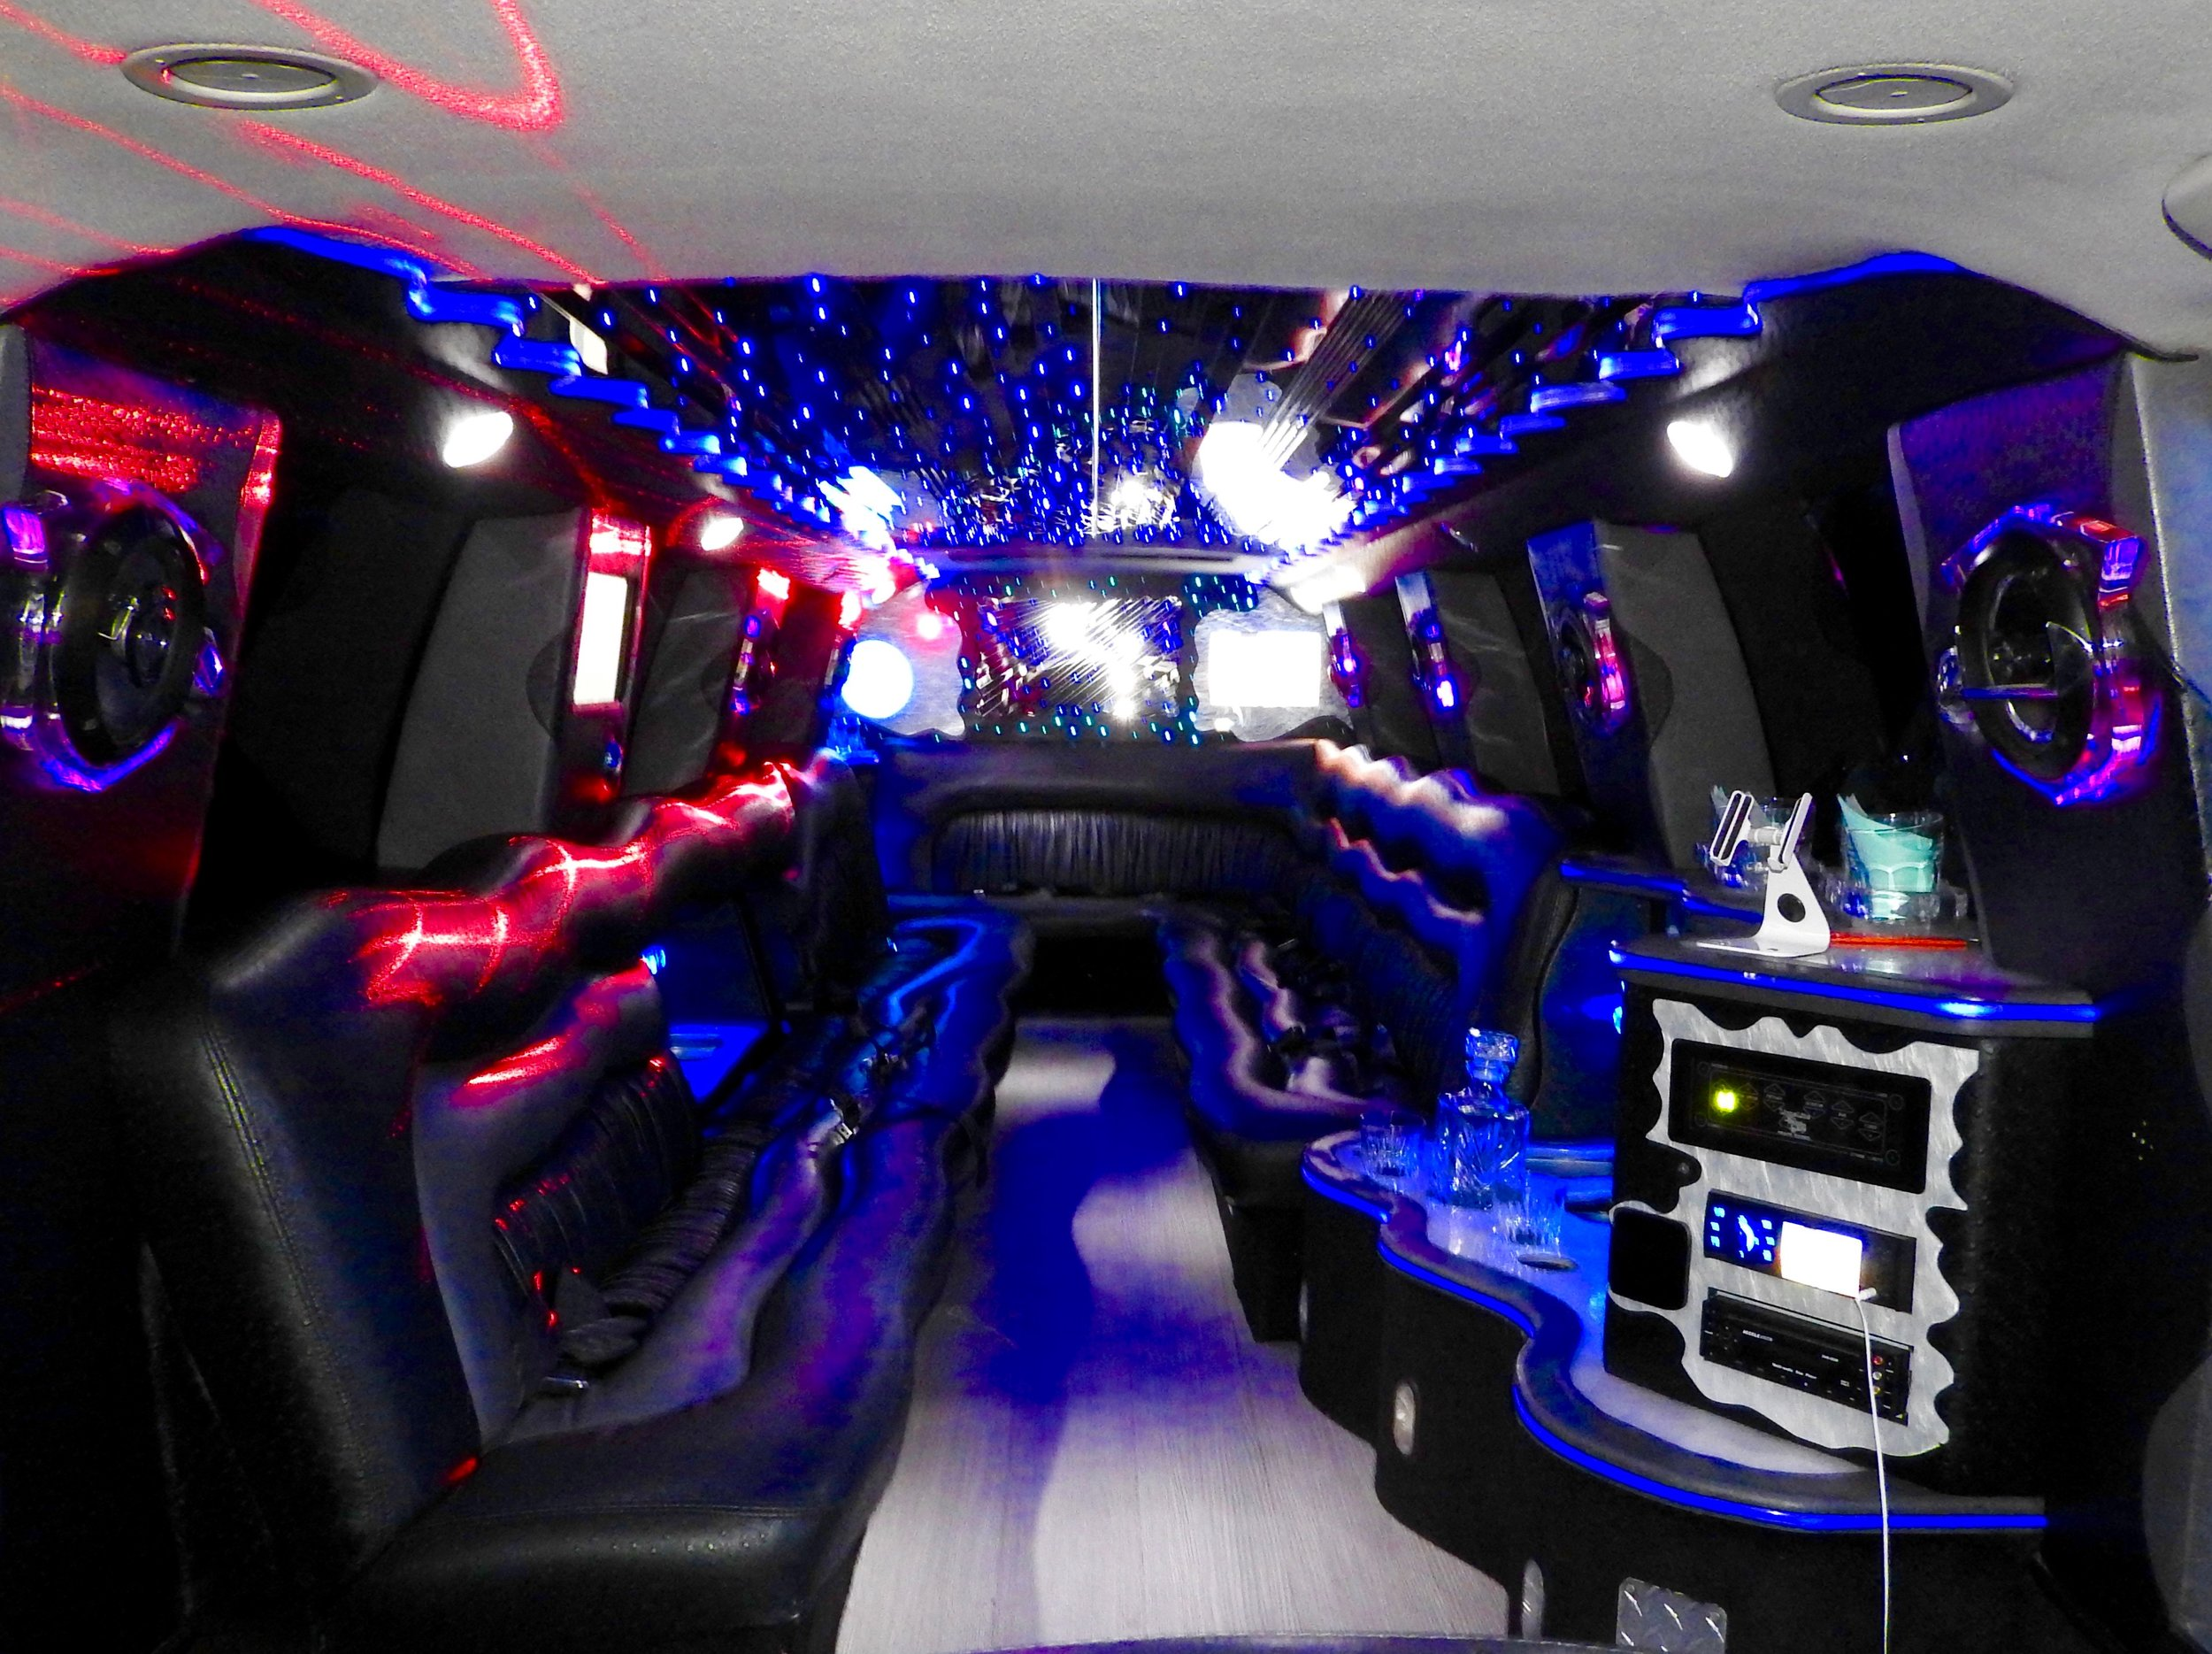 Utah Royalty Limo Ride in Confort, Luxury & Safety